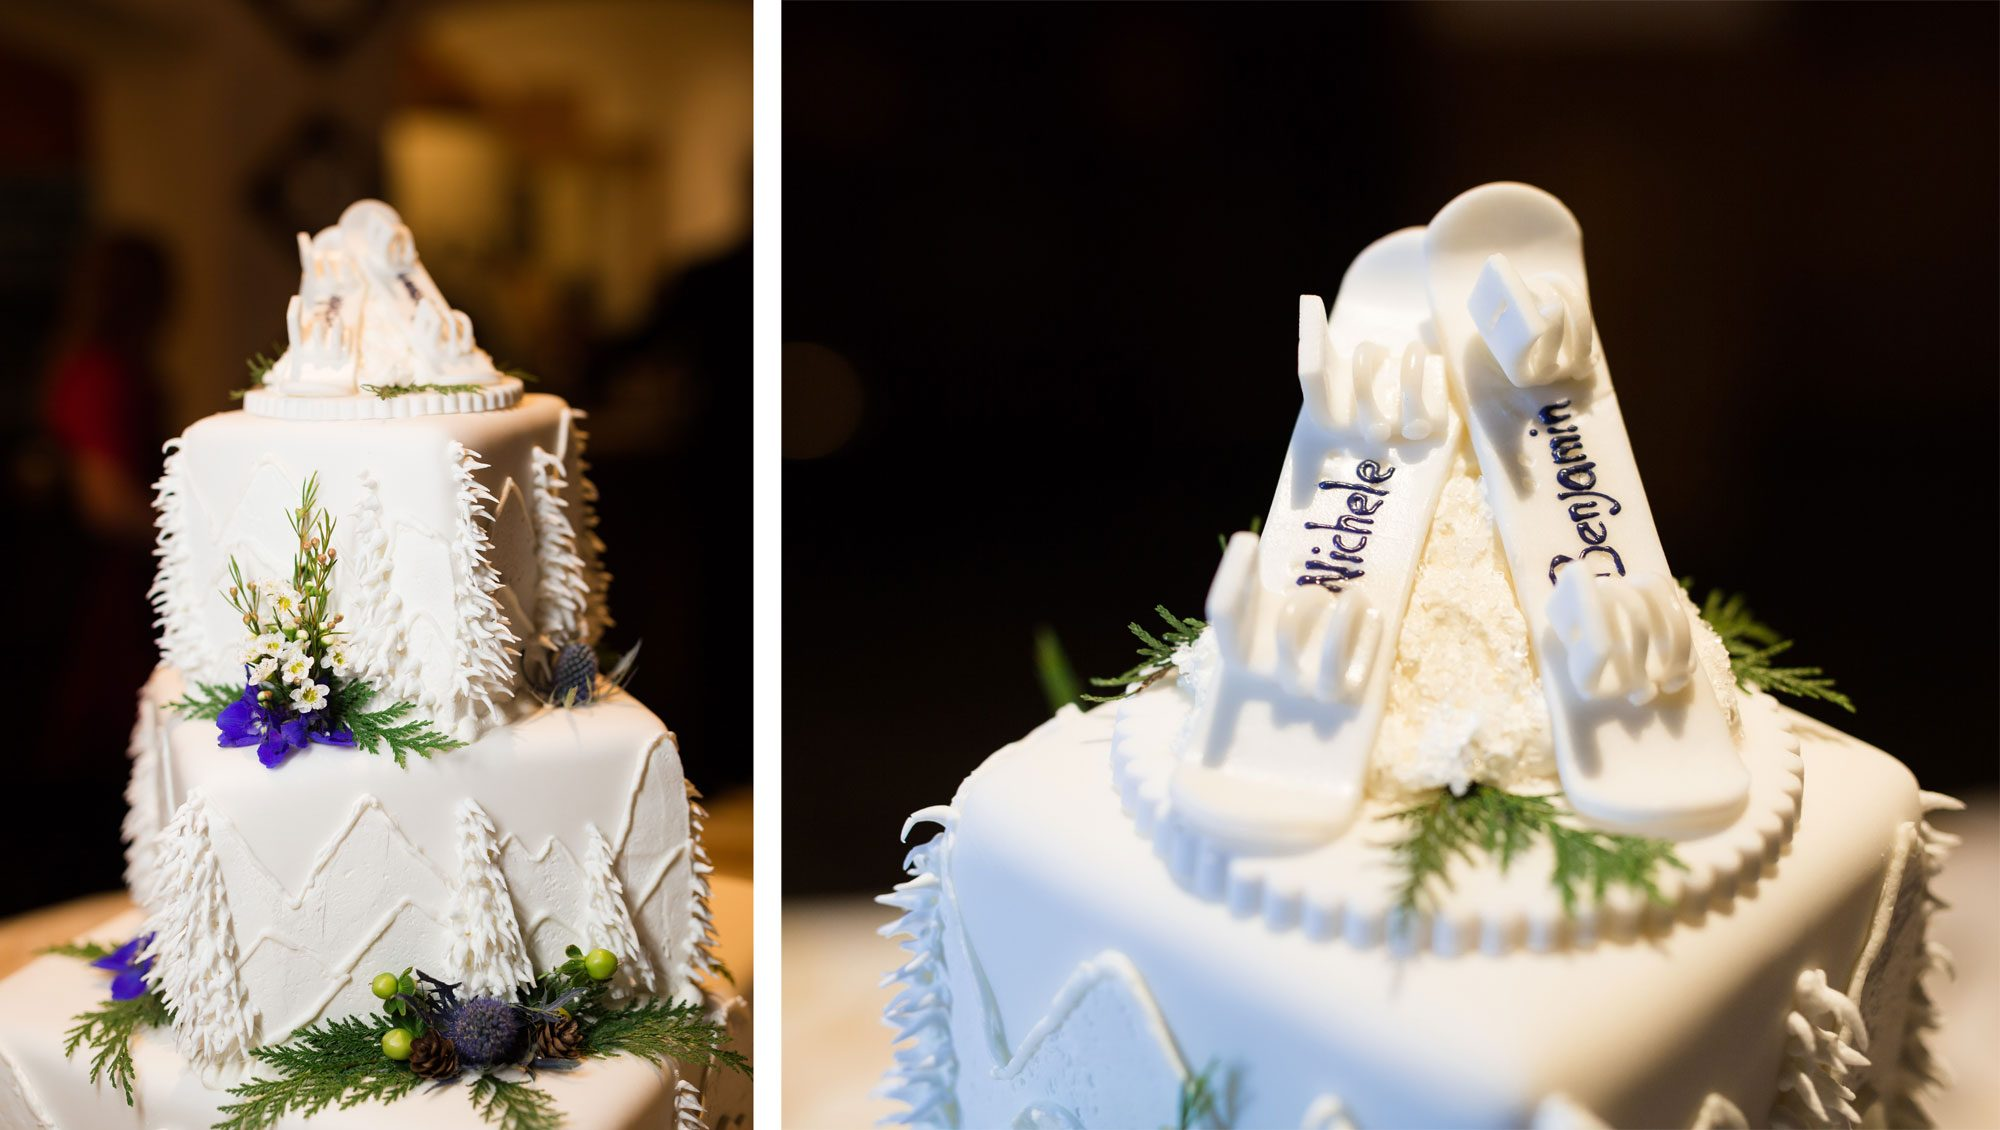 Wedding cake with snowboard cake topper